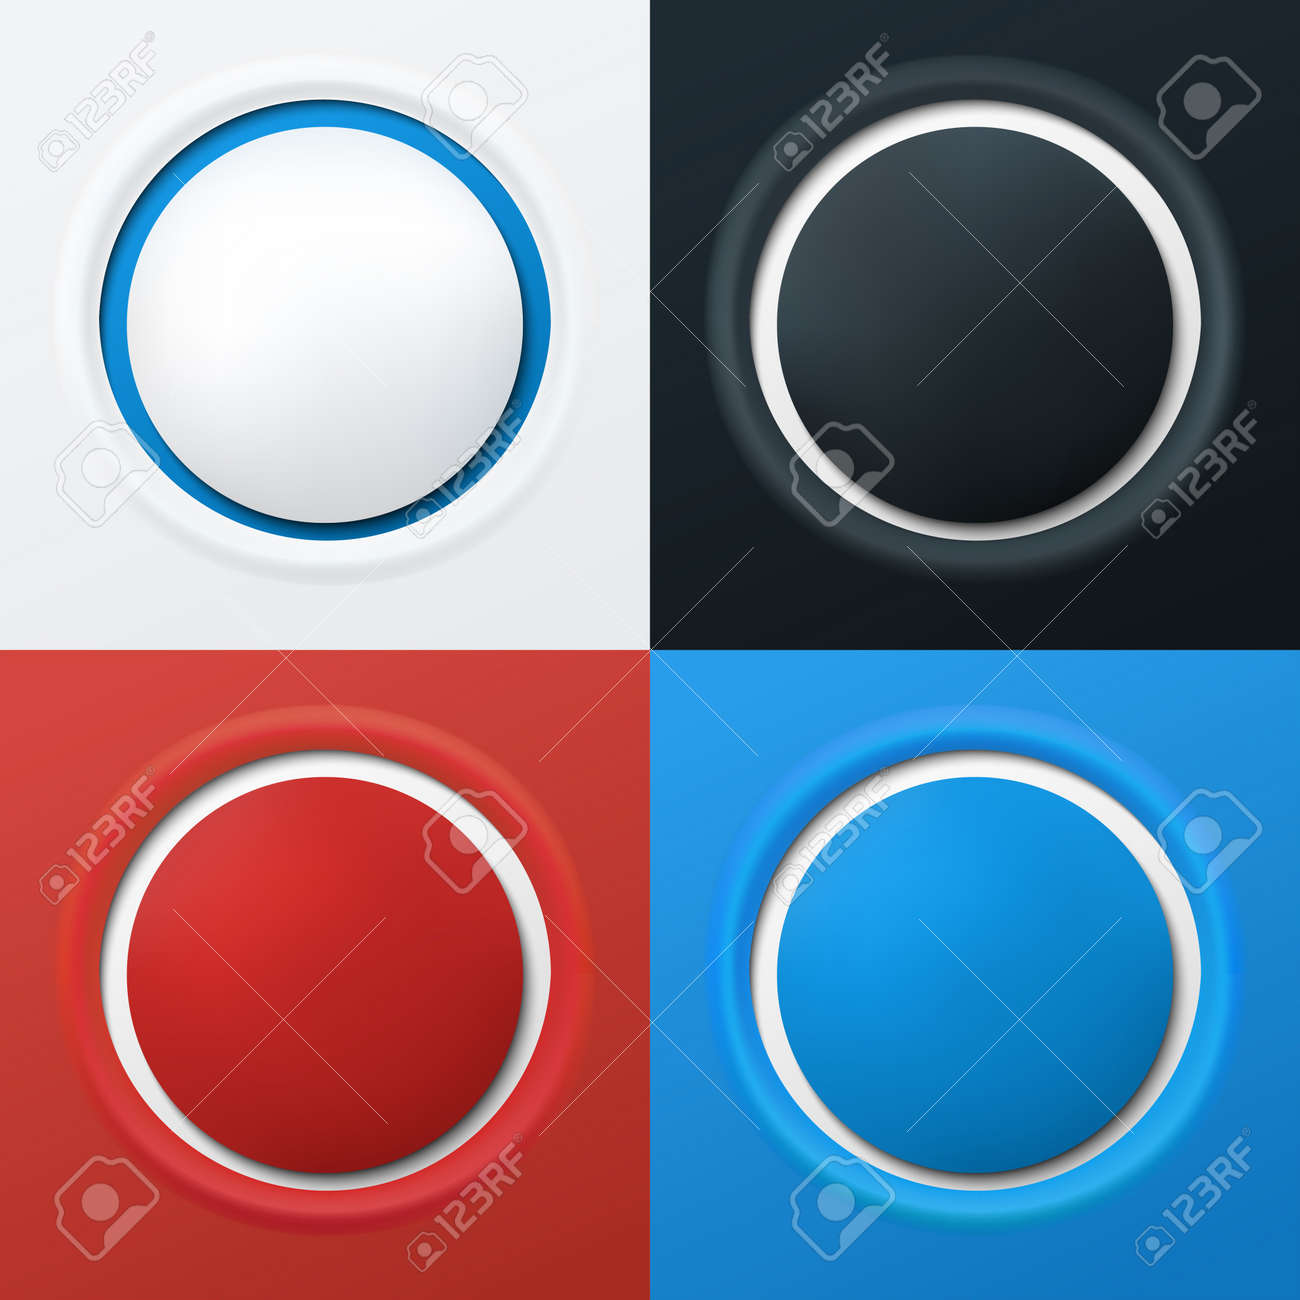 Set of 3d buttons in different colors  Vector illustration Stock Vector - 14239495